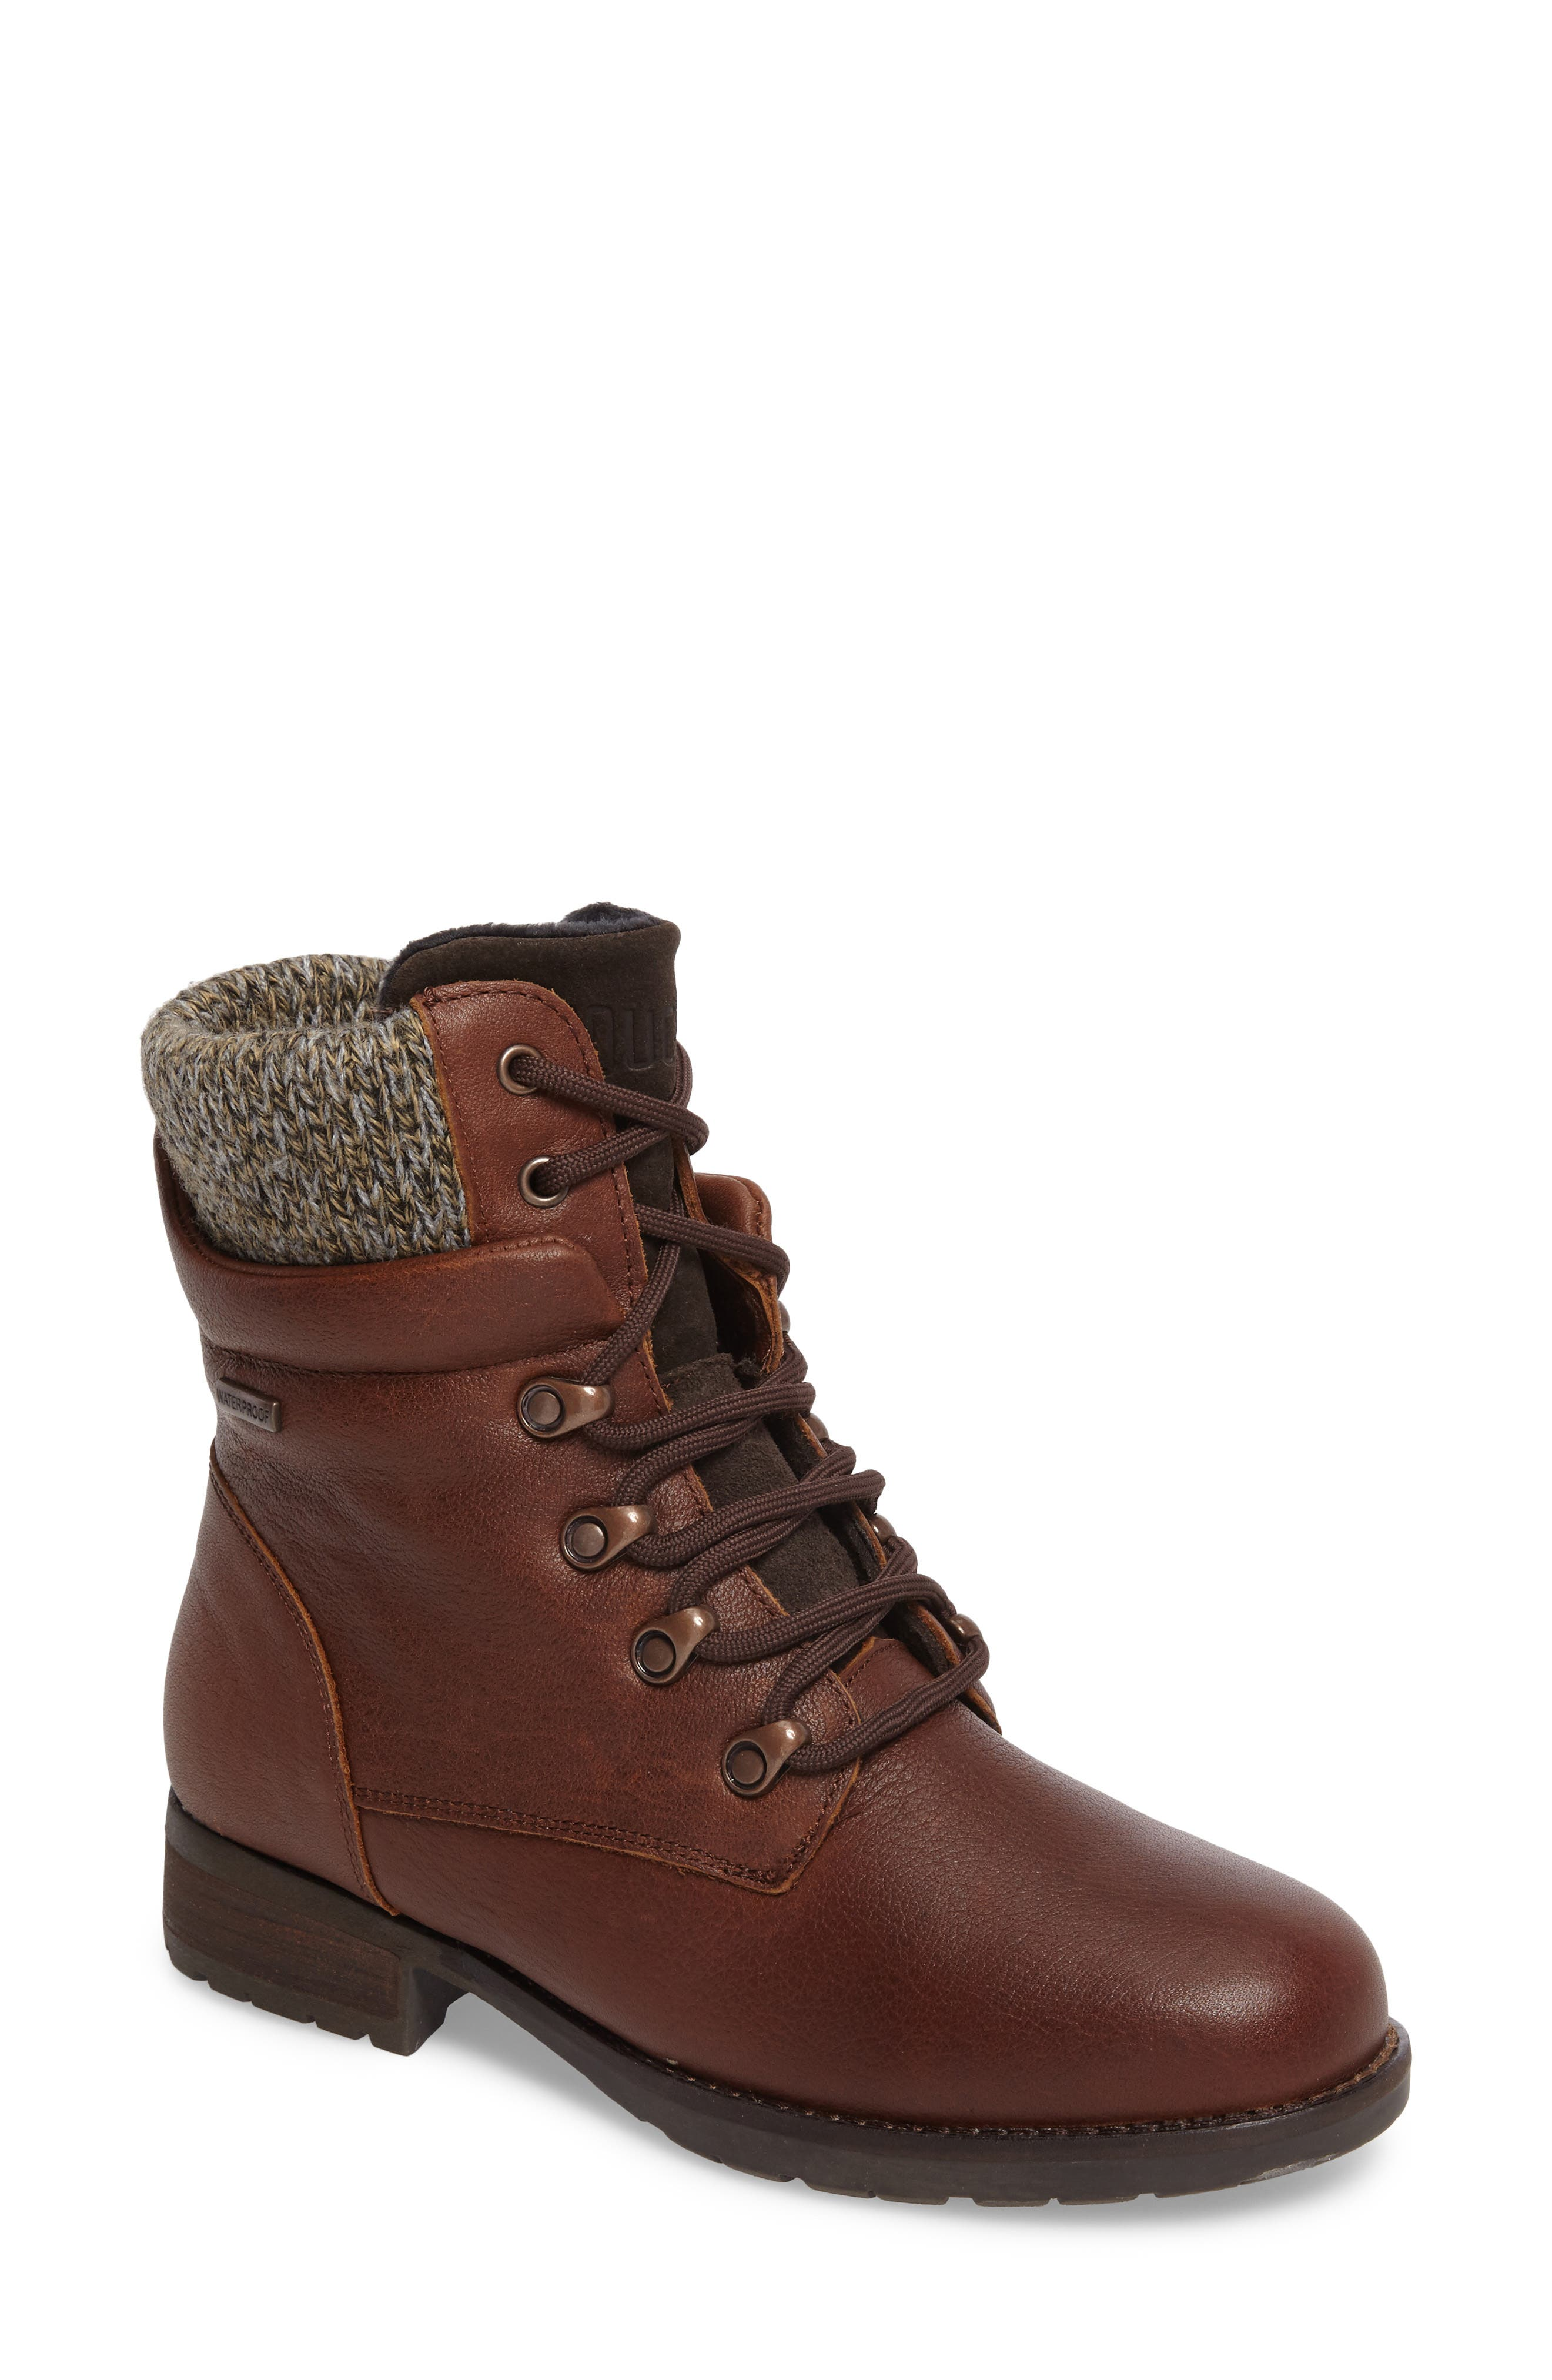 Derry Waterproof Boot,                         Main,                         color, Dark Brown Leather